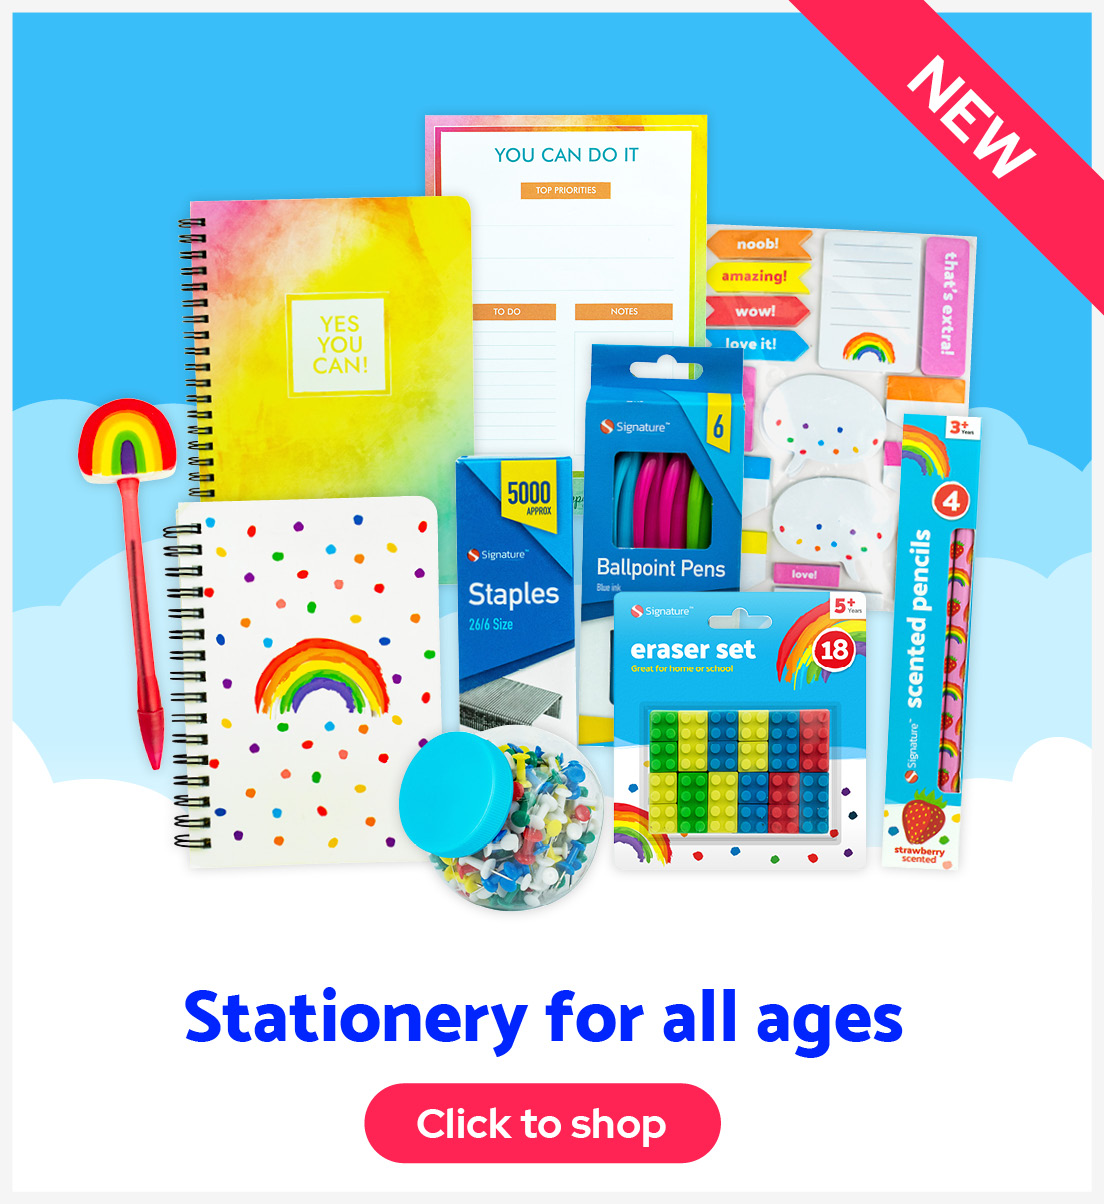 Stationery for all ages